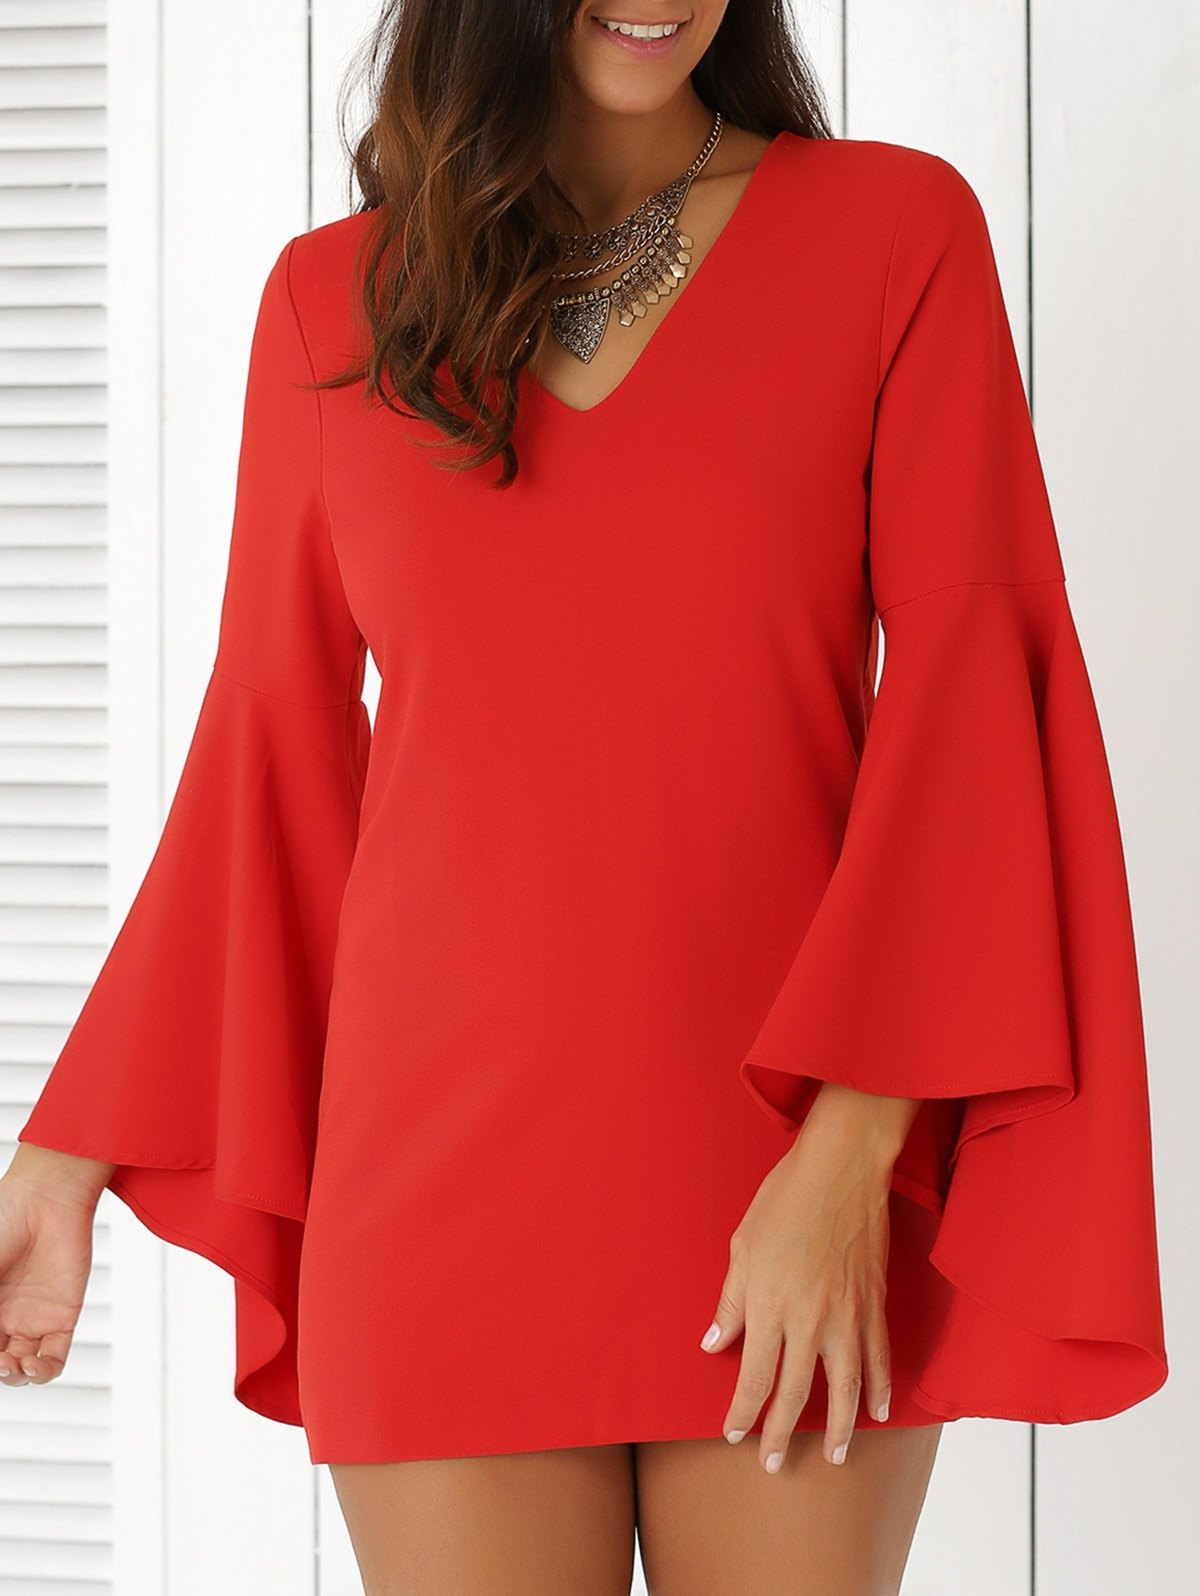 Plunging Neck Flare Sleeve Solid Color Sheath Dress